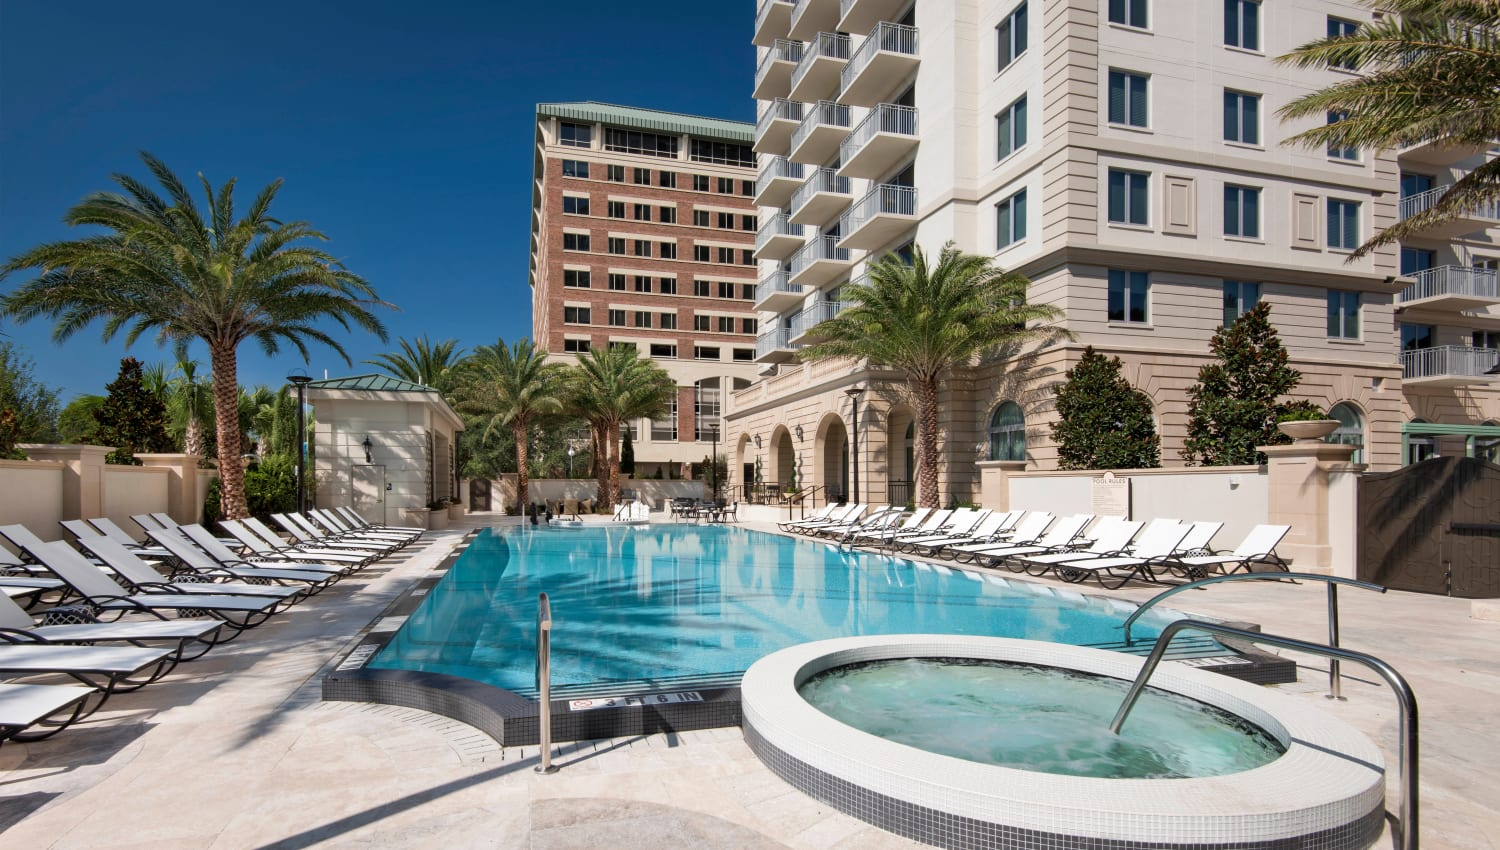 Resort-style swimming pool and spa at Olympus Harbour Island in Tampa, Florida